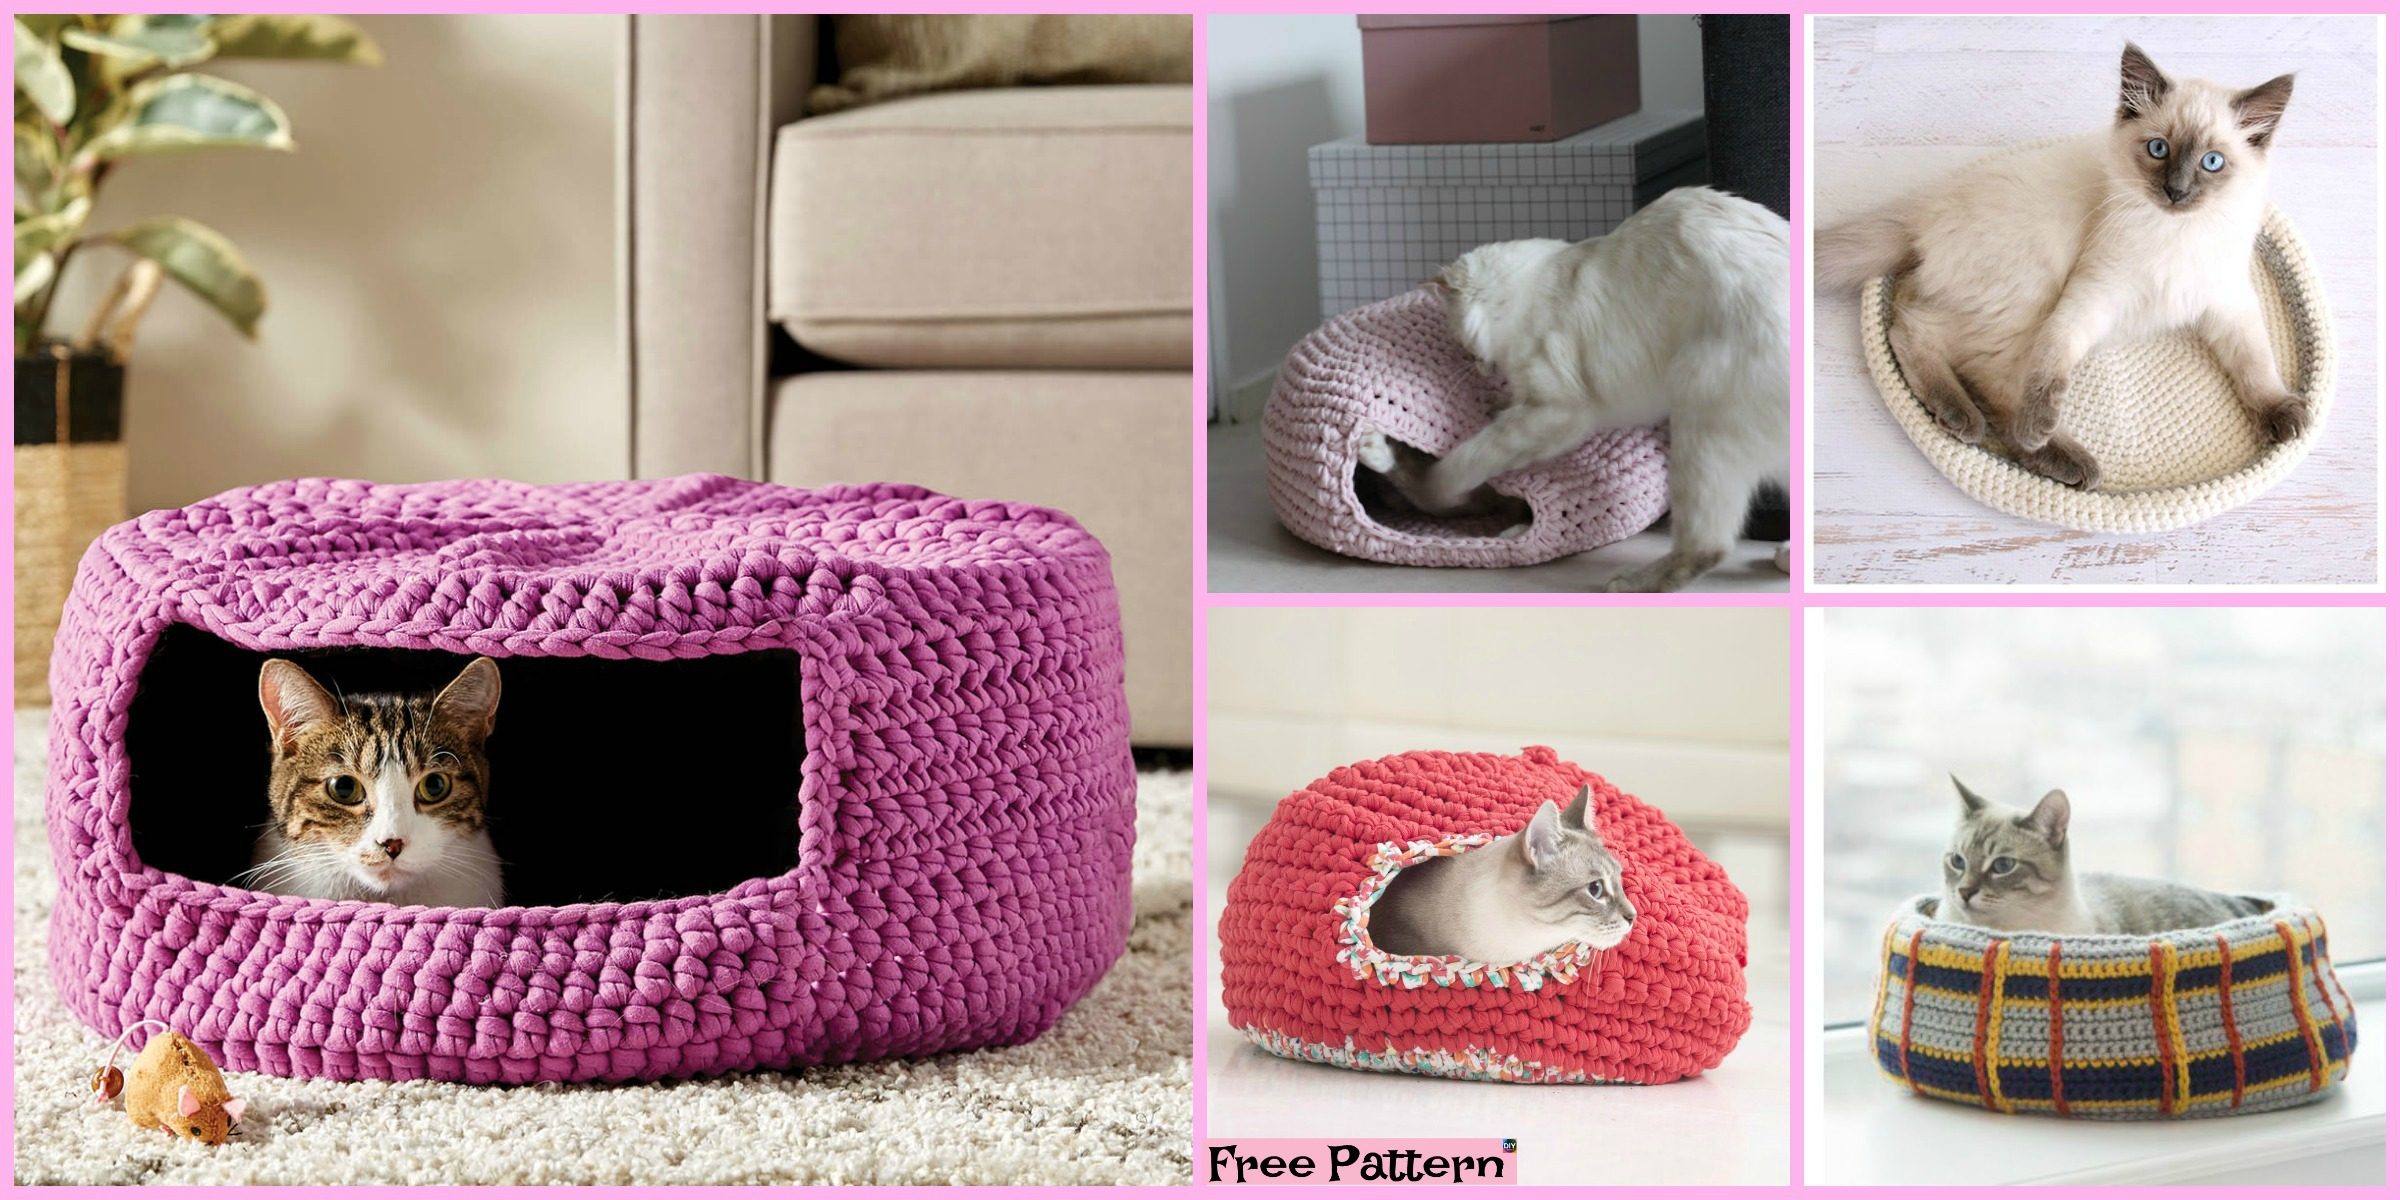 10 Awesome Crochet Cat Bed – Free Patterns